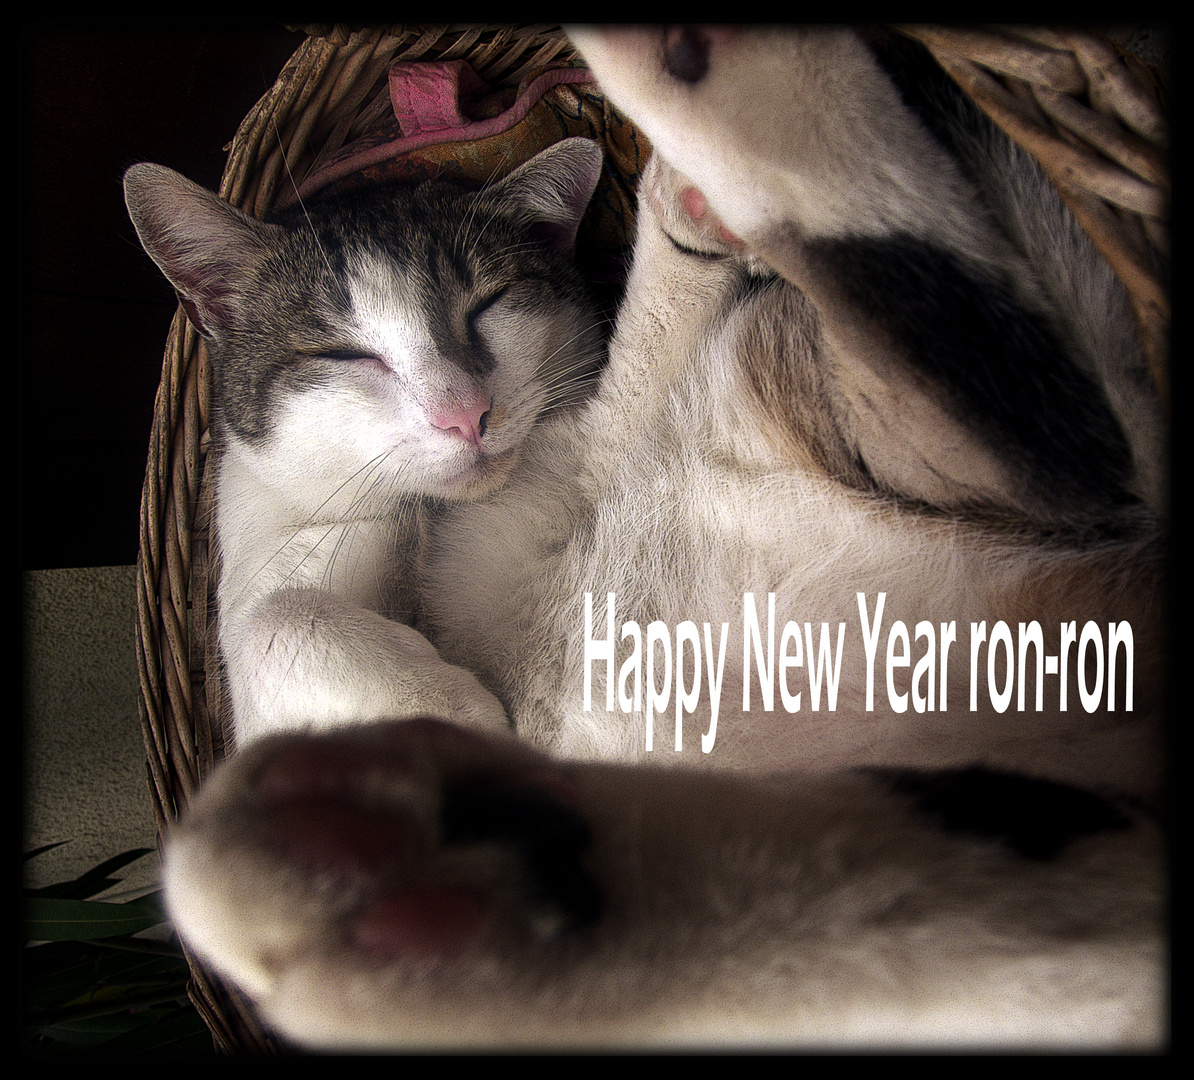 Happy New Year ron-ron